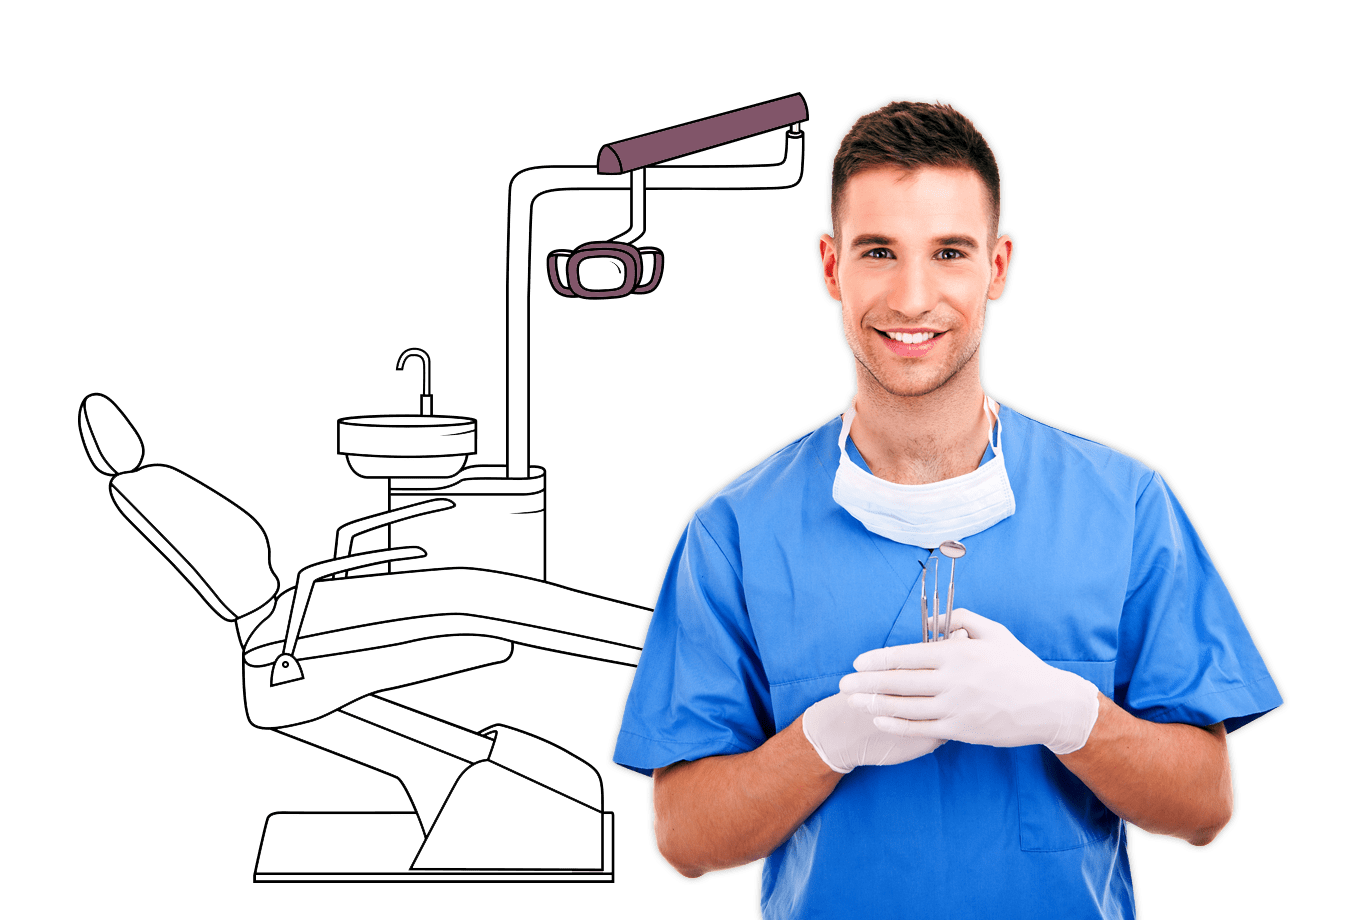 dental surgery insurance illustration of dentist holding dental surgery equipment